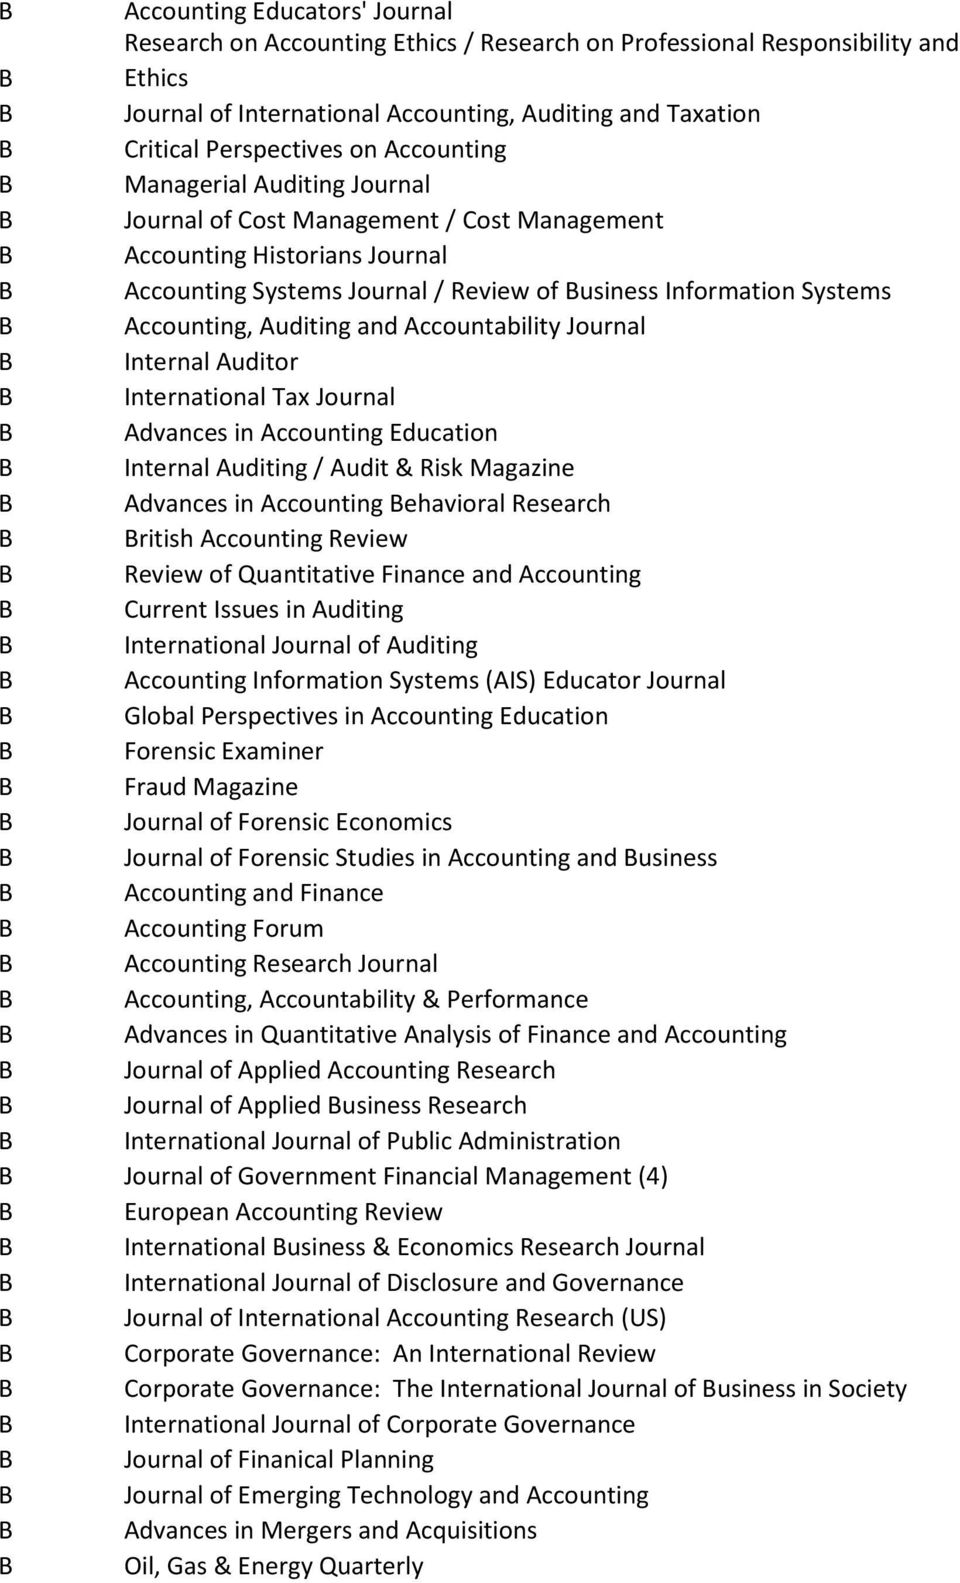 ccountability Journal Internal uditor International Tax Journal dvances in ccounting Education Internal uditing / udit & Risk Magazine dvances in ccounting ehavioral Research ritish ccounting Review